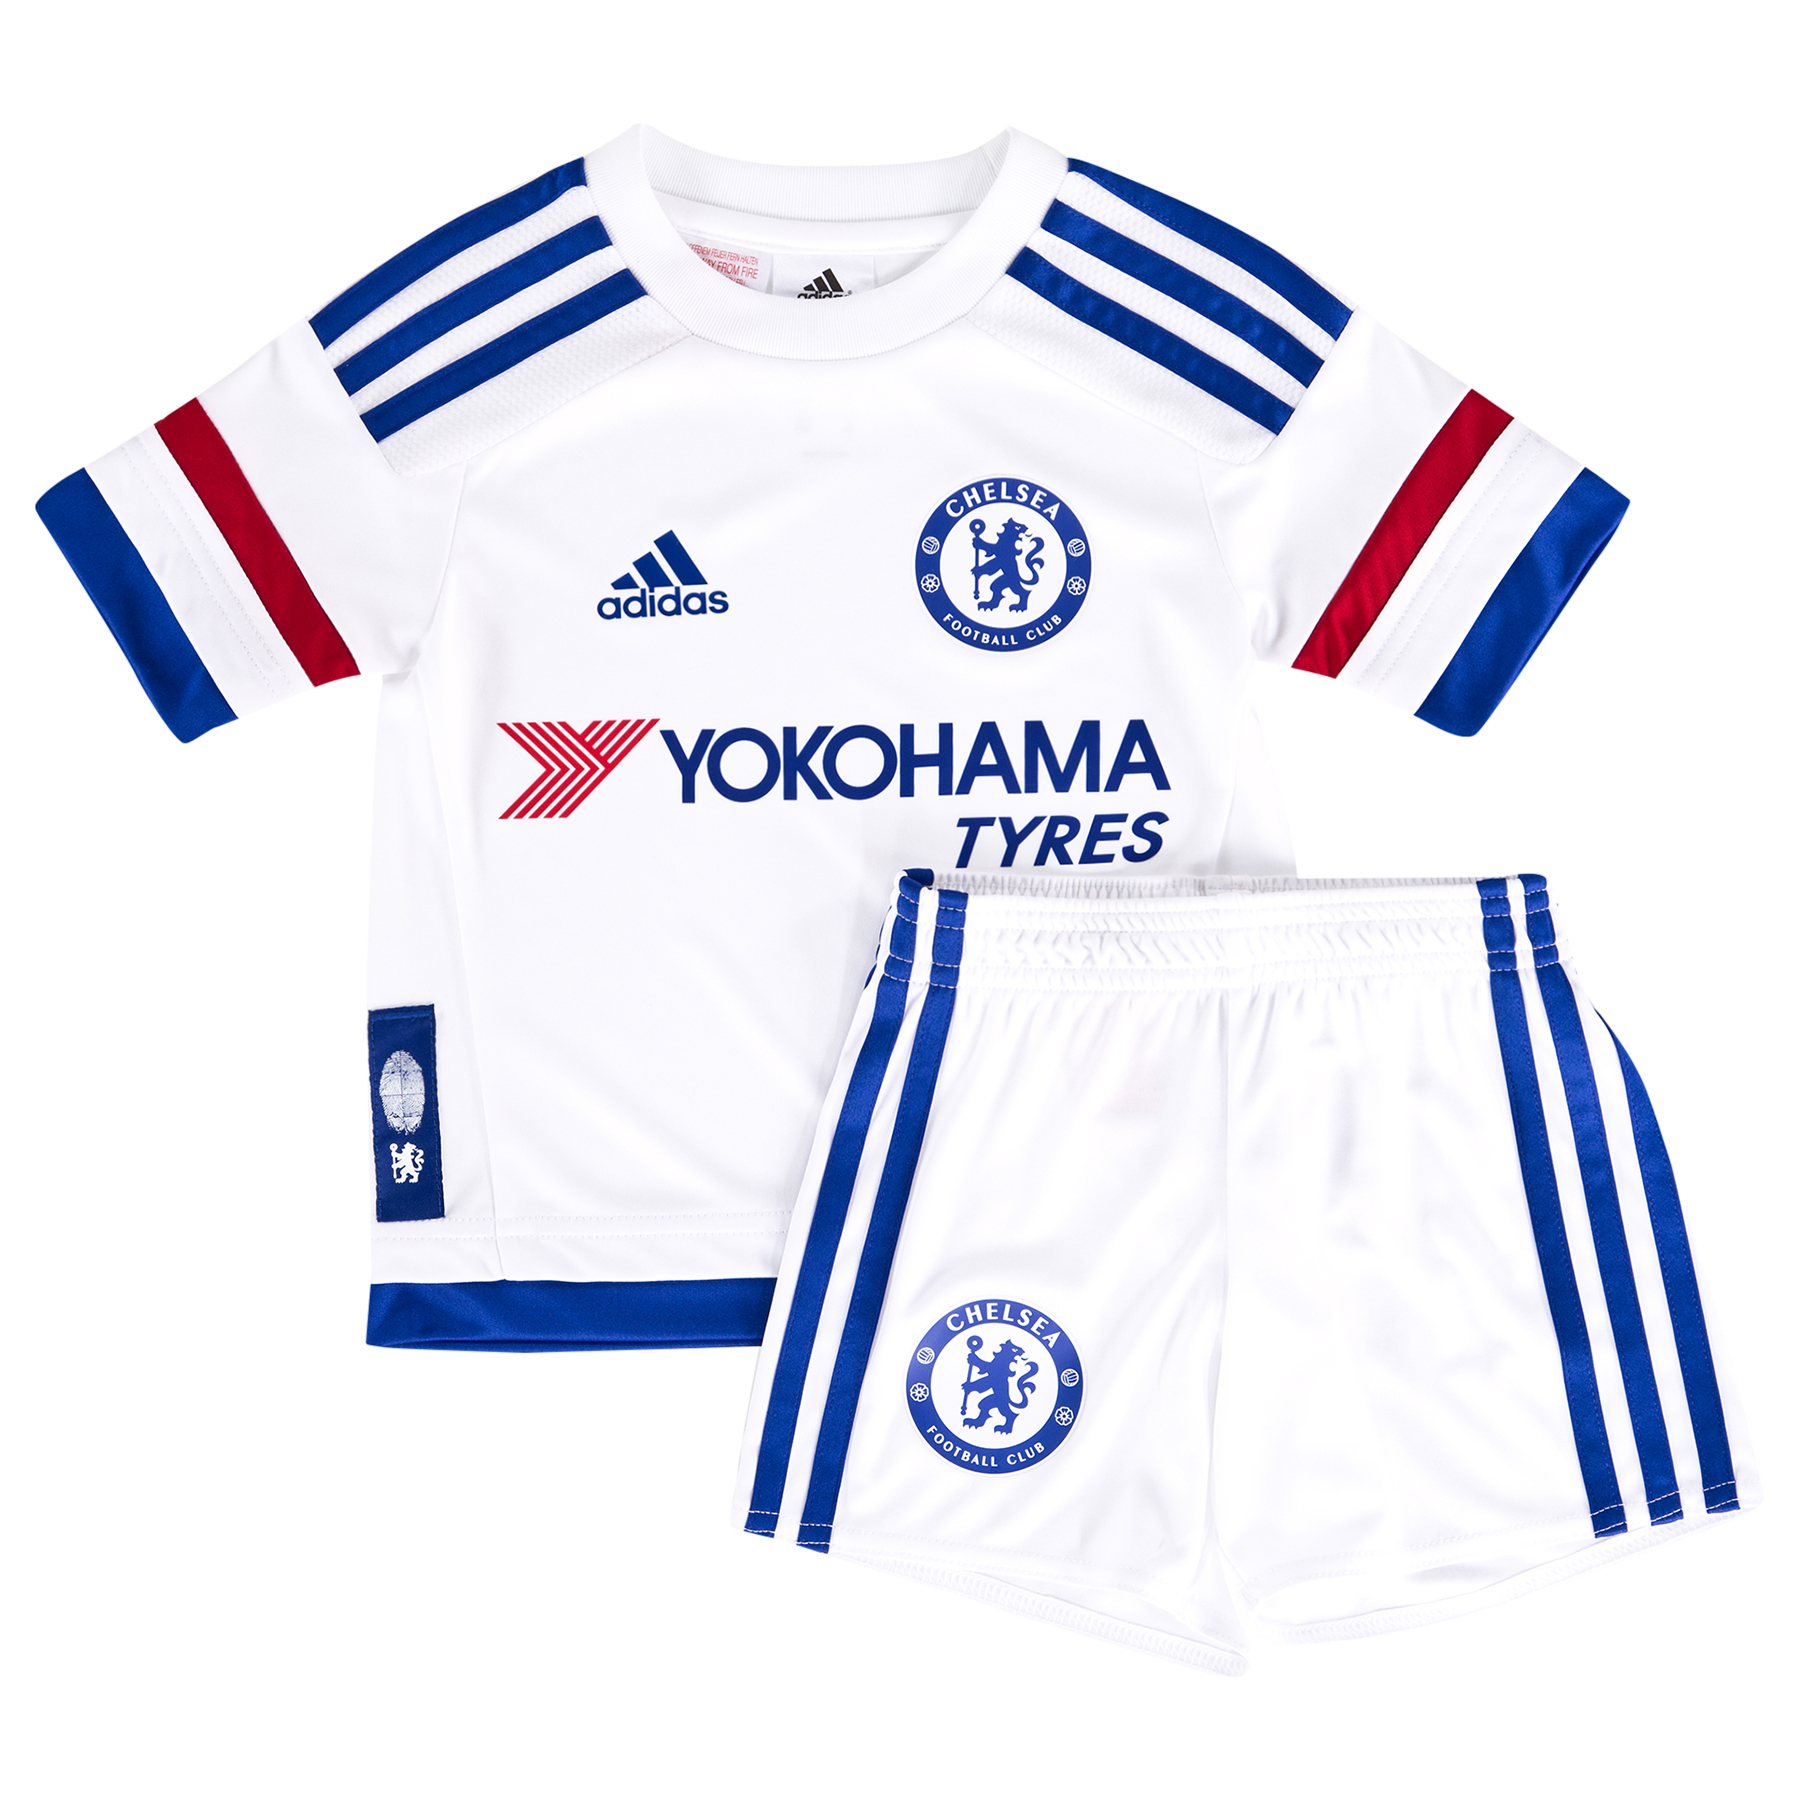 Chelsea  Away Mini Kit 2015/16 Young fans can show their support for their favourite club with the new Chelsea Away Mini Kit for the 2015/16 season. The Away Kit mirrors the colour story of the Home Kit in an unseen way: Red, White and Chelsea Blue stripes on the arms. The fingerprint label adds value and an authentic story. Budding players can join the likes of Champions Diego Costa, Cesc Fabregas and Eden Hazard in this new kit! Benefits CLIMACOOL® Provides heat and moisture management through ventilation. Regular Fit Club crest: heat transfer 100% rec.PES 100% PES